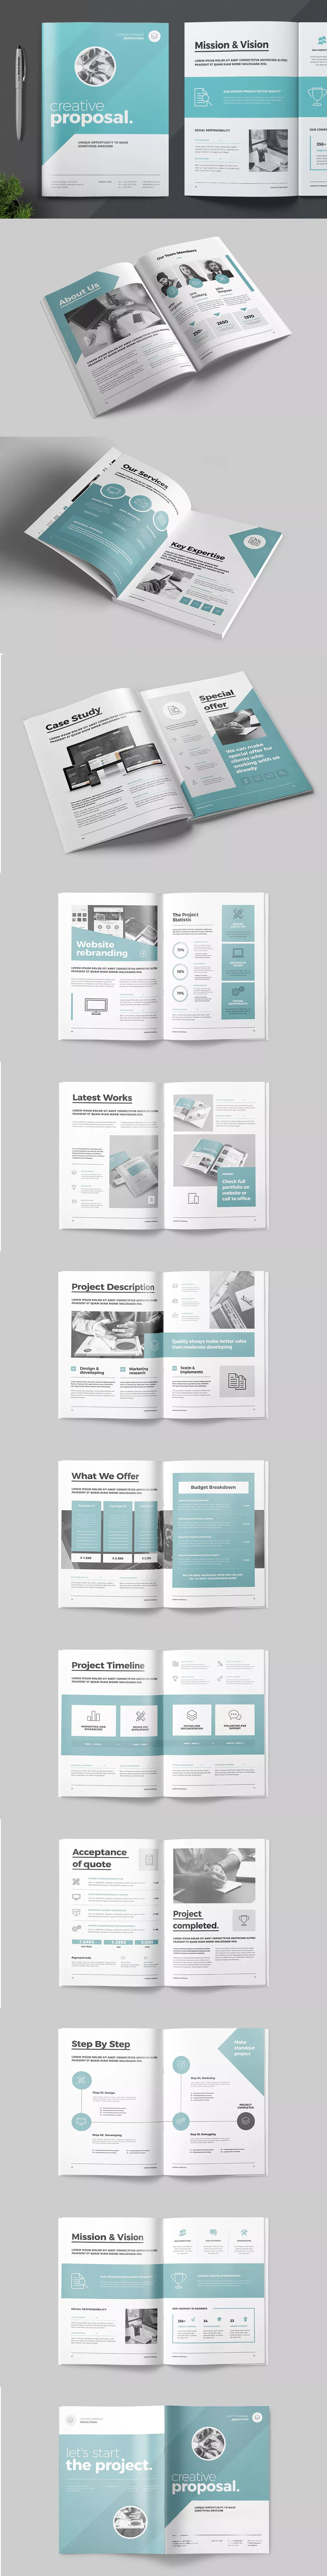 Proposal Template InDesign INDD - A4 | Proposal Brochure Templates ...